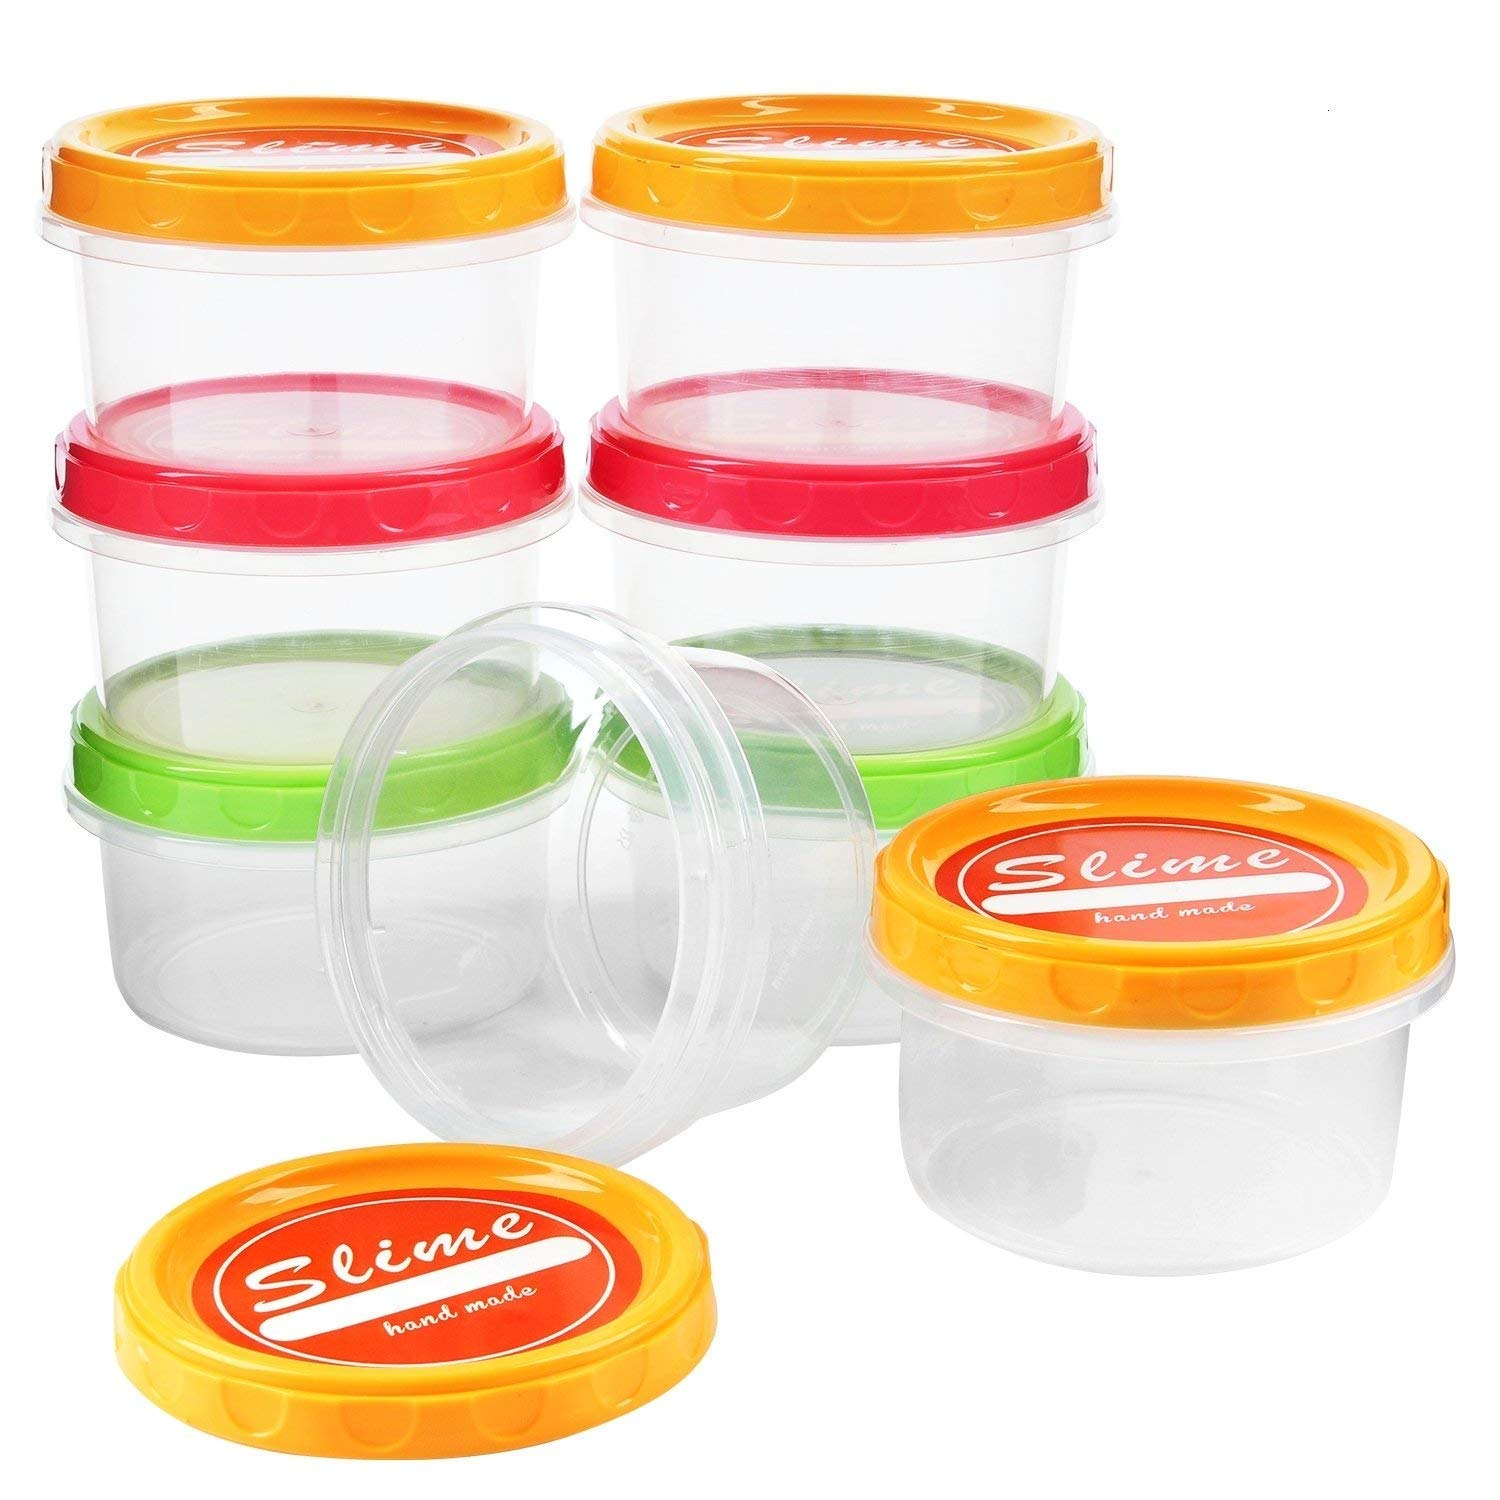 YUEAON 8 oz Sturdy Slime containers with lids Plastic Storage Jars Slime Accessories Supplies,6pack/250ml 4336939798